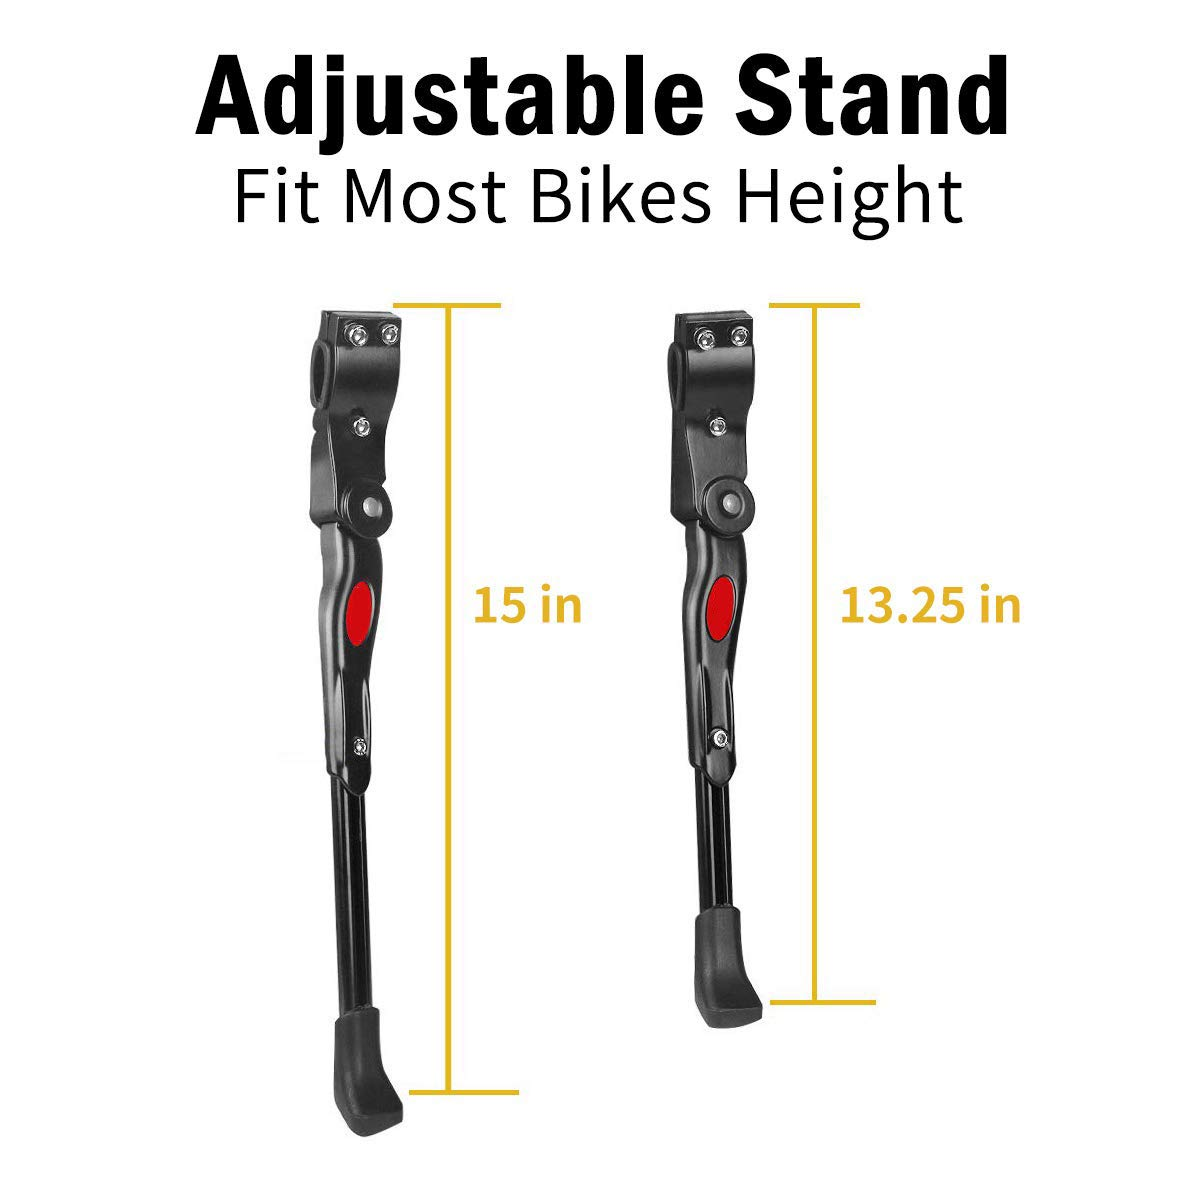 Bicycle Stand Bicycle Stand Mountain Bike and Road Bike Adjustable Length Suitable for Most Black Bicycle Accessories City Bike Child Bike Bike Adult Bike